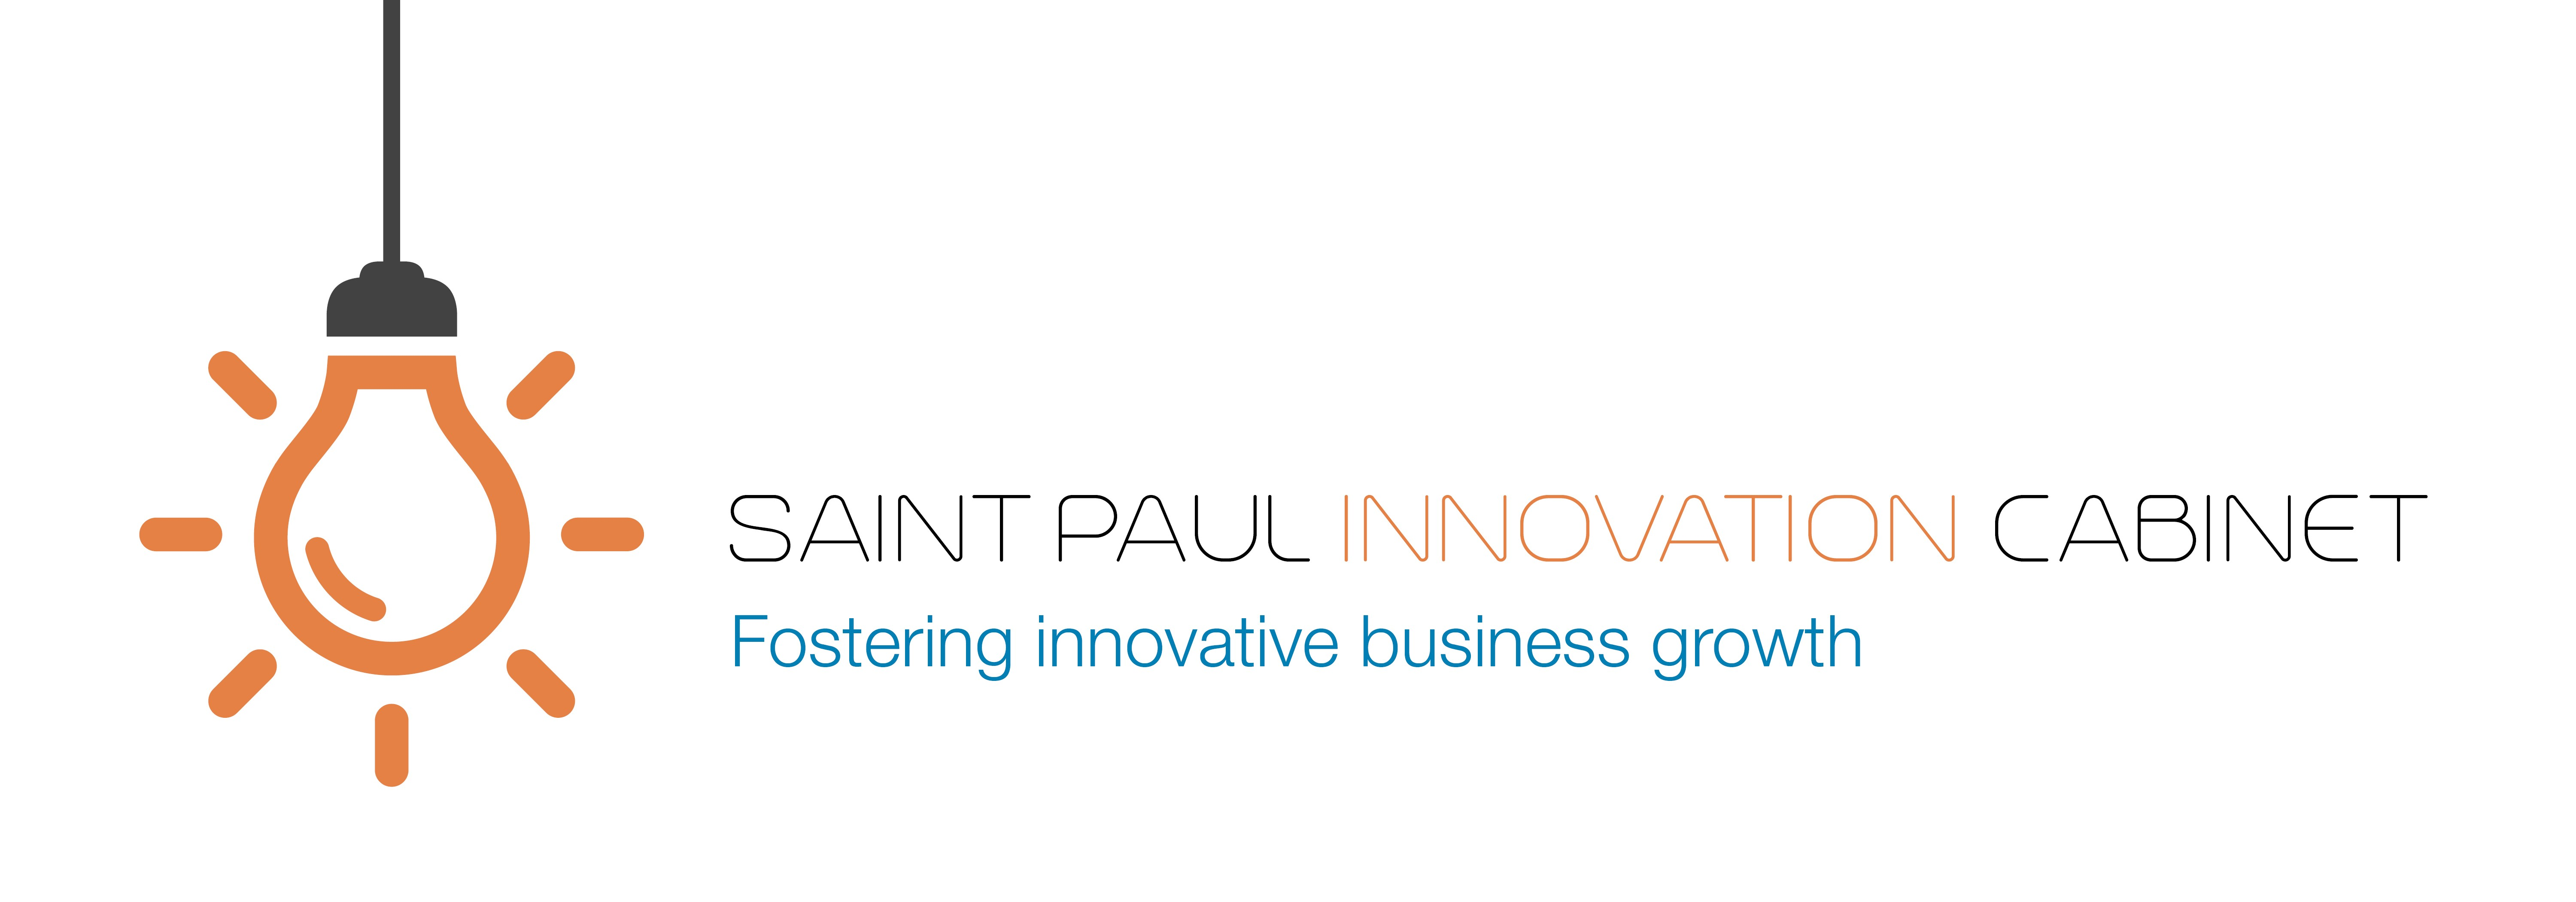 Saint Paul Innovation Cabinet